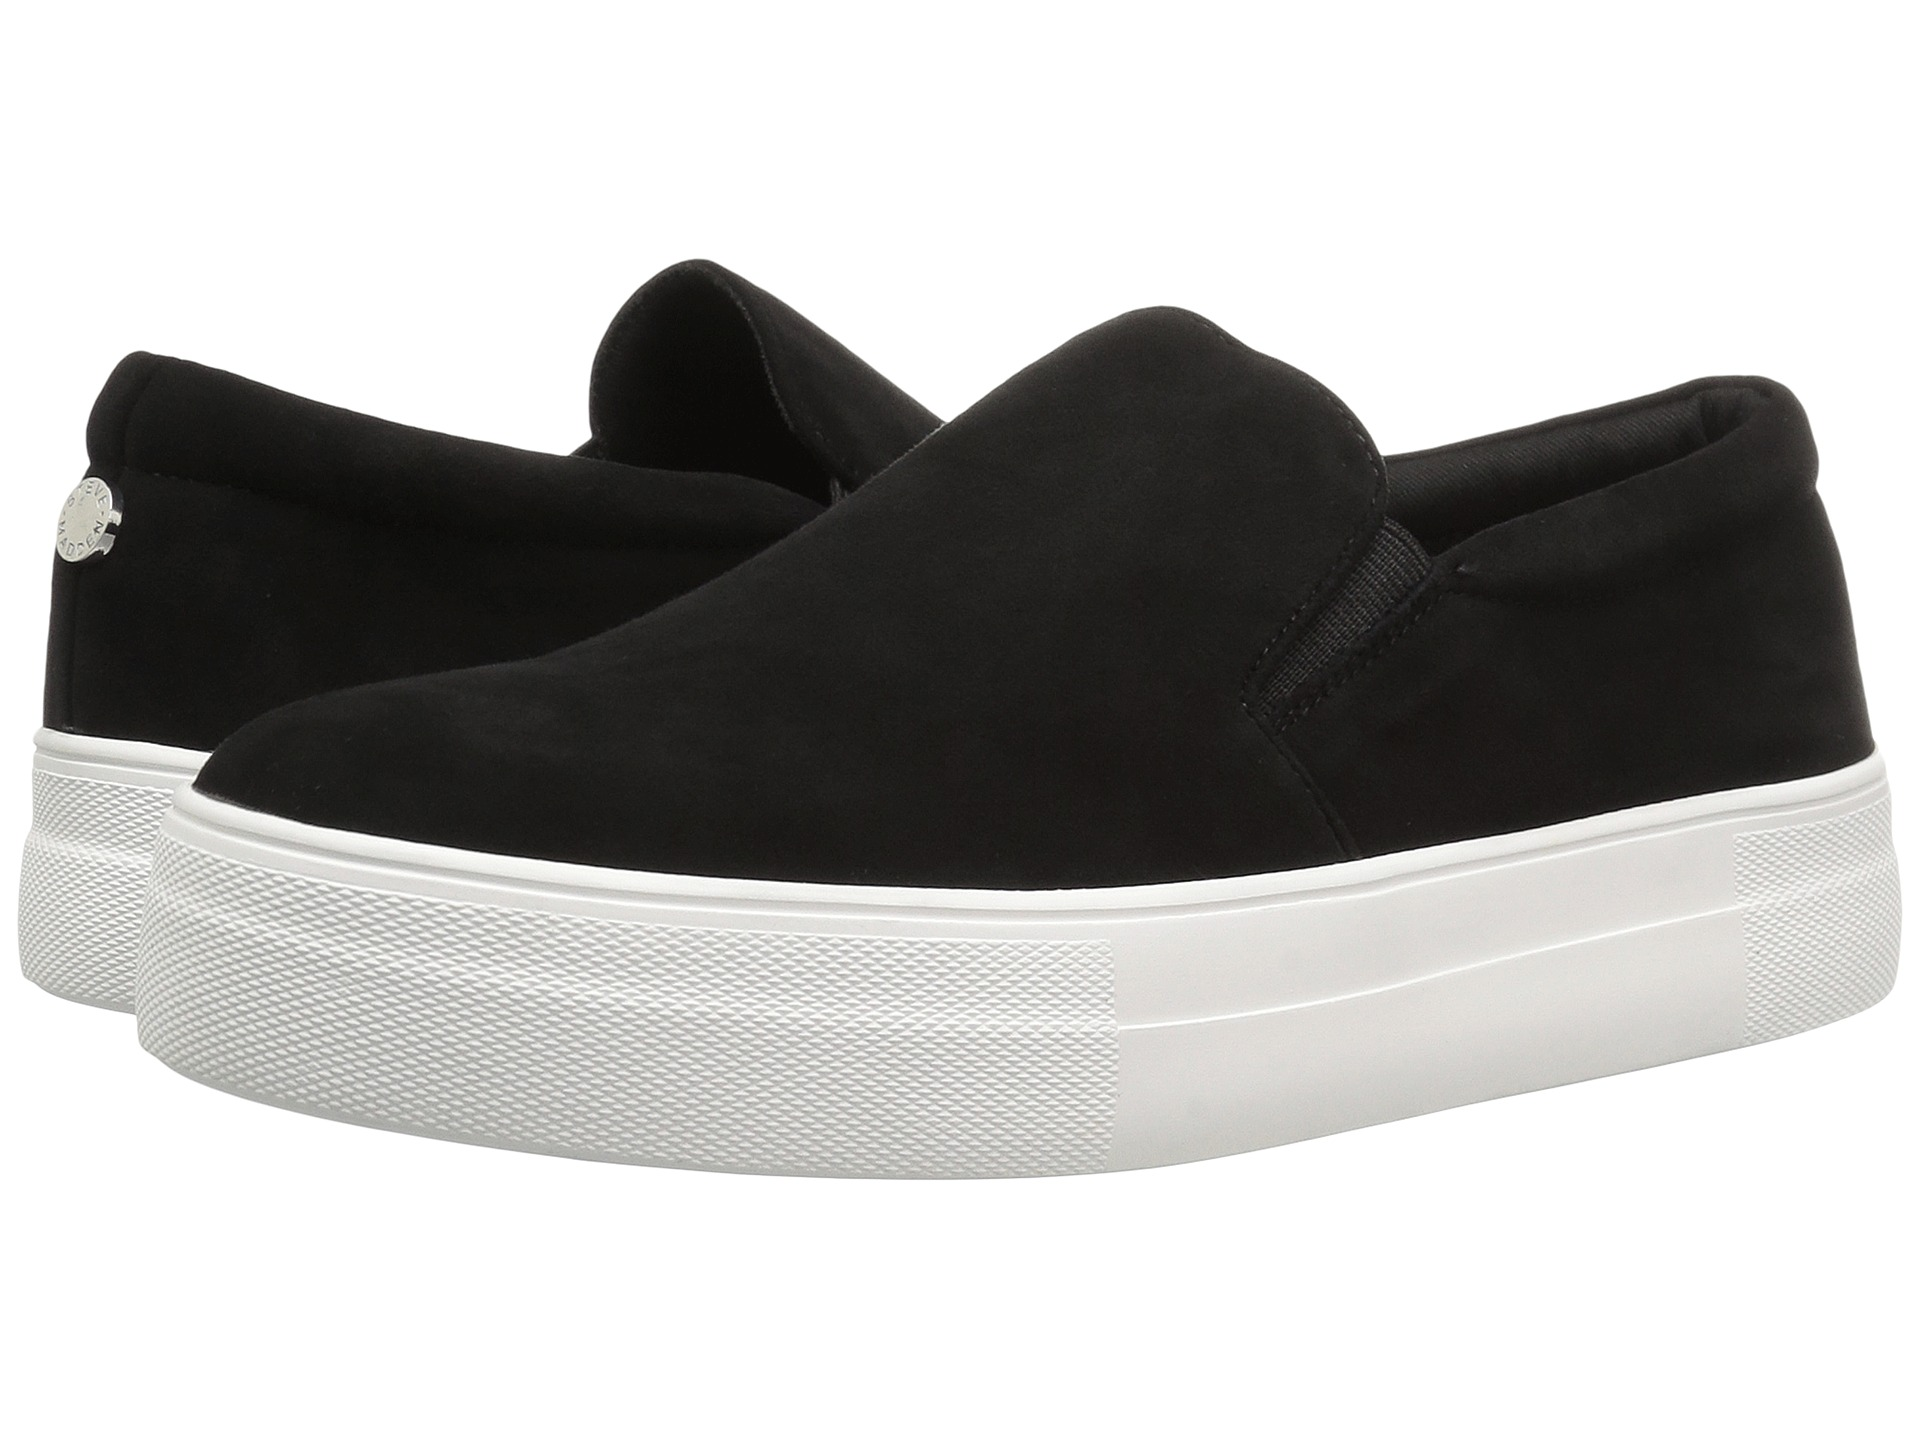 a067012657b Details about STEVE MADDEN Gills Women Slip On Fashion Sneakers Black Suede